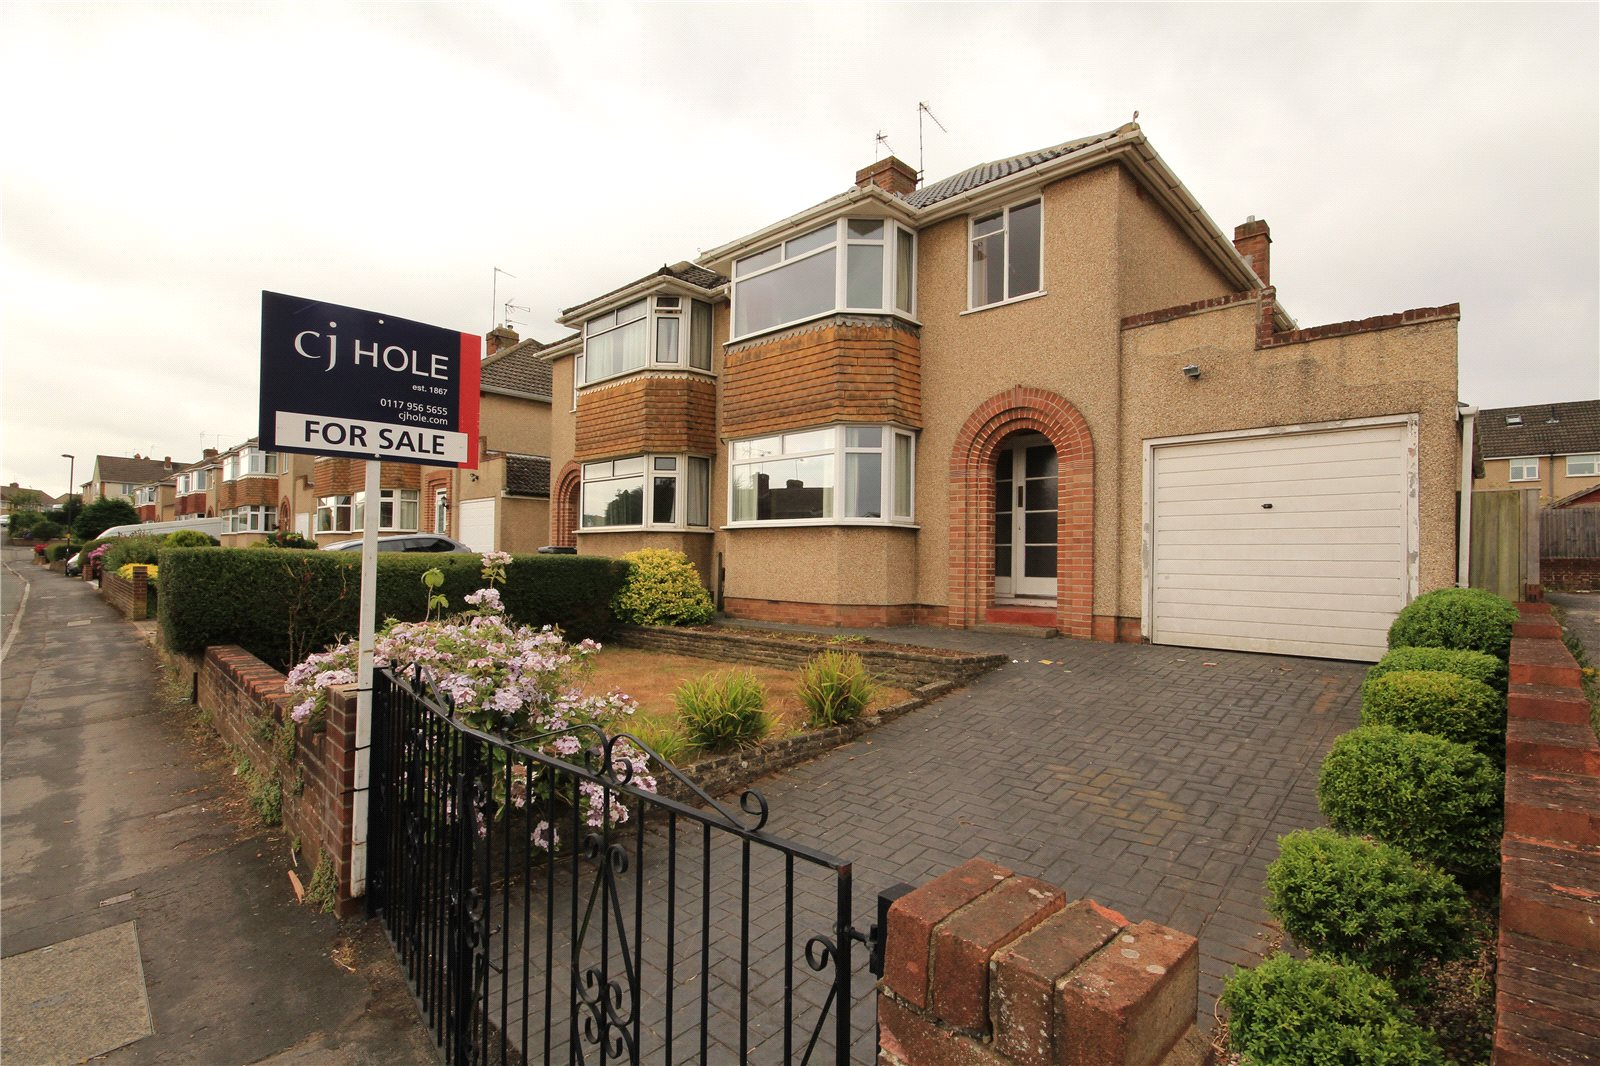 Cj Hole Downend 3 Bedroom House For Sale In Westbourne